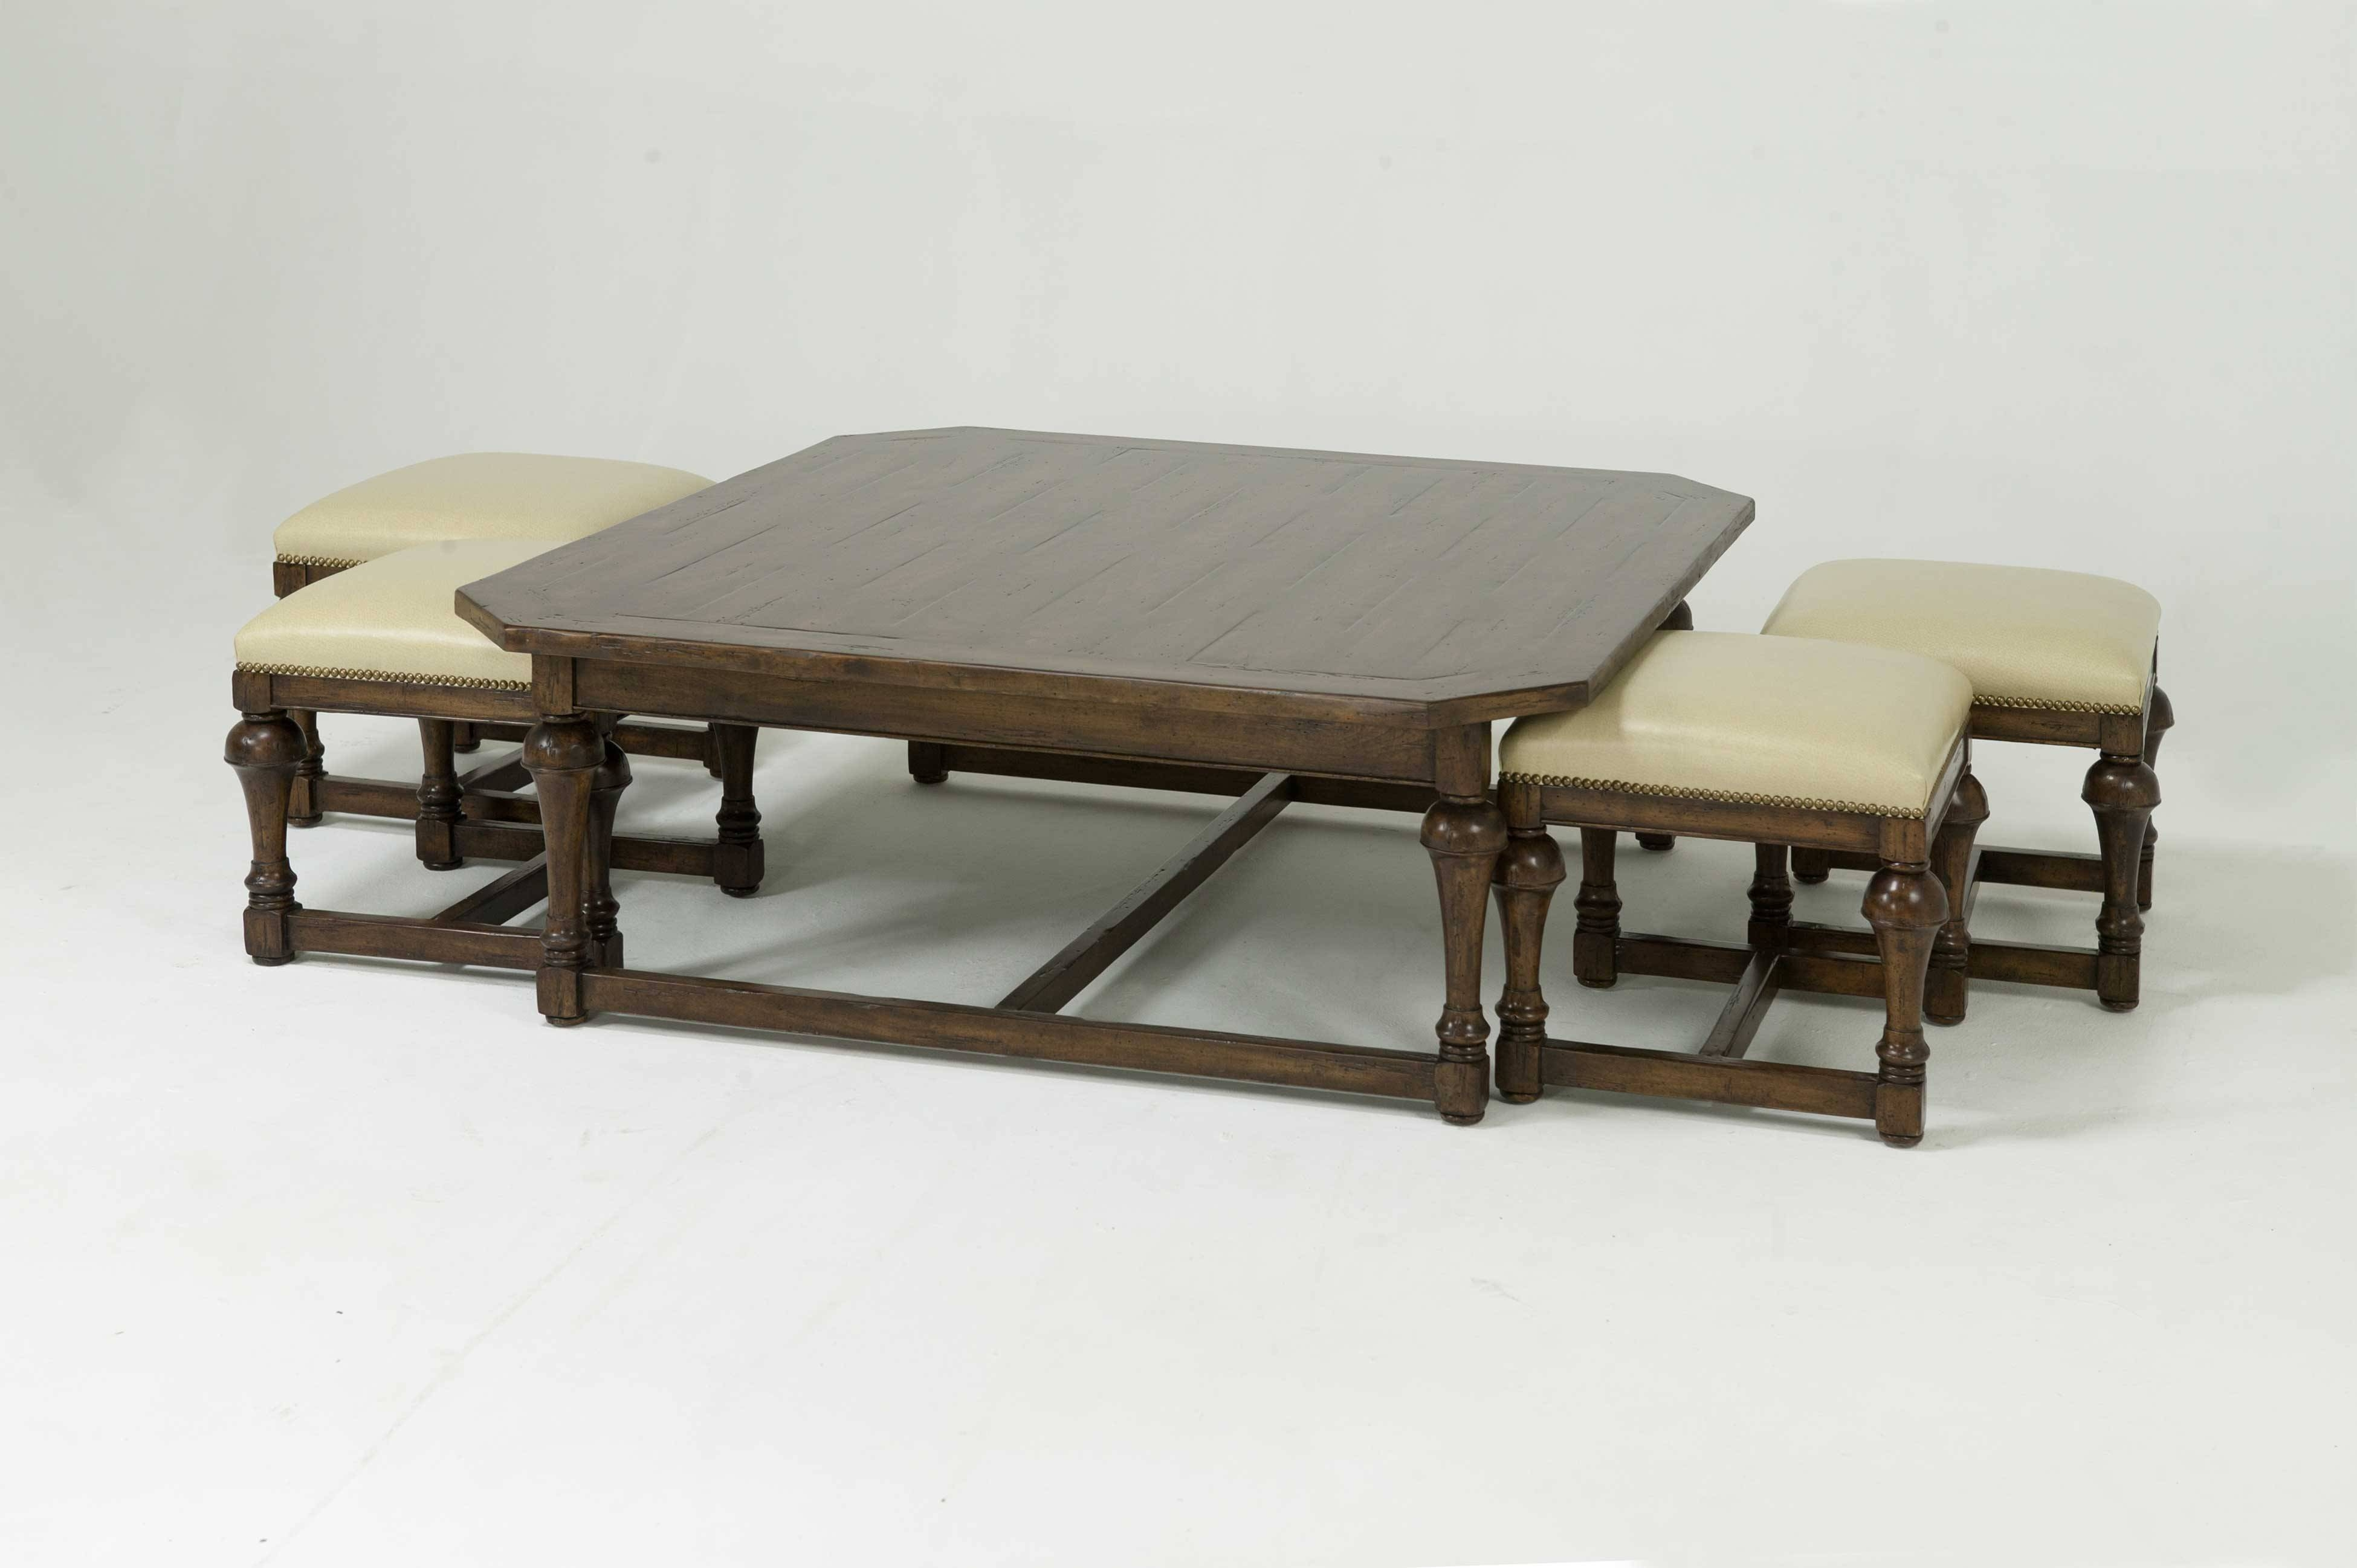 Furniture: Luxury Coffee Table With Stools For Living Room for Square Coffee Tables With Storages (Image 14 of 30)